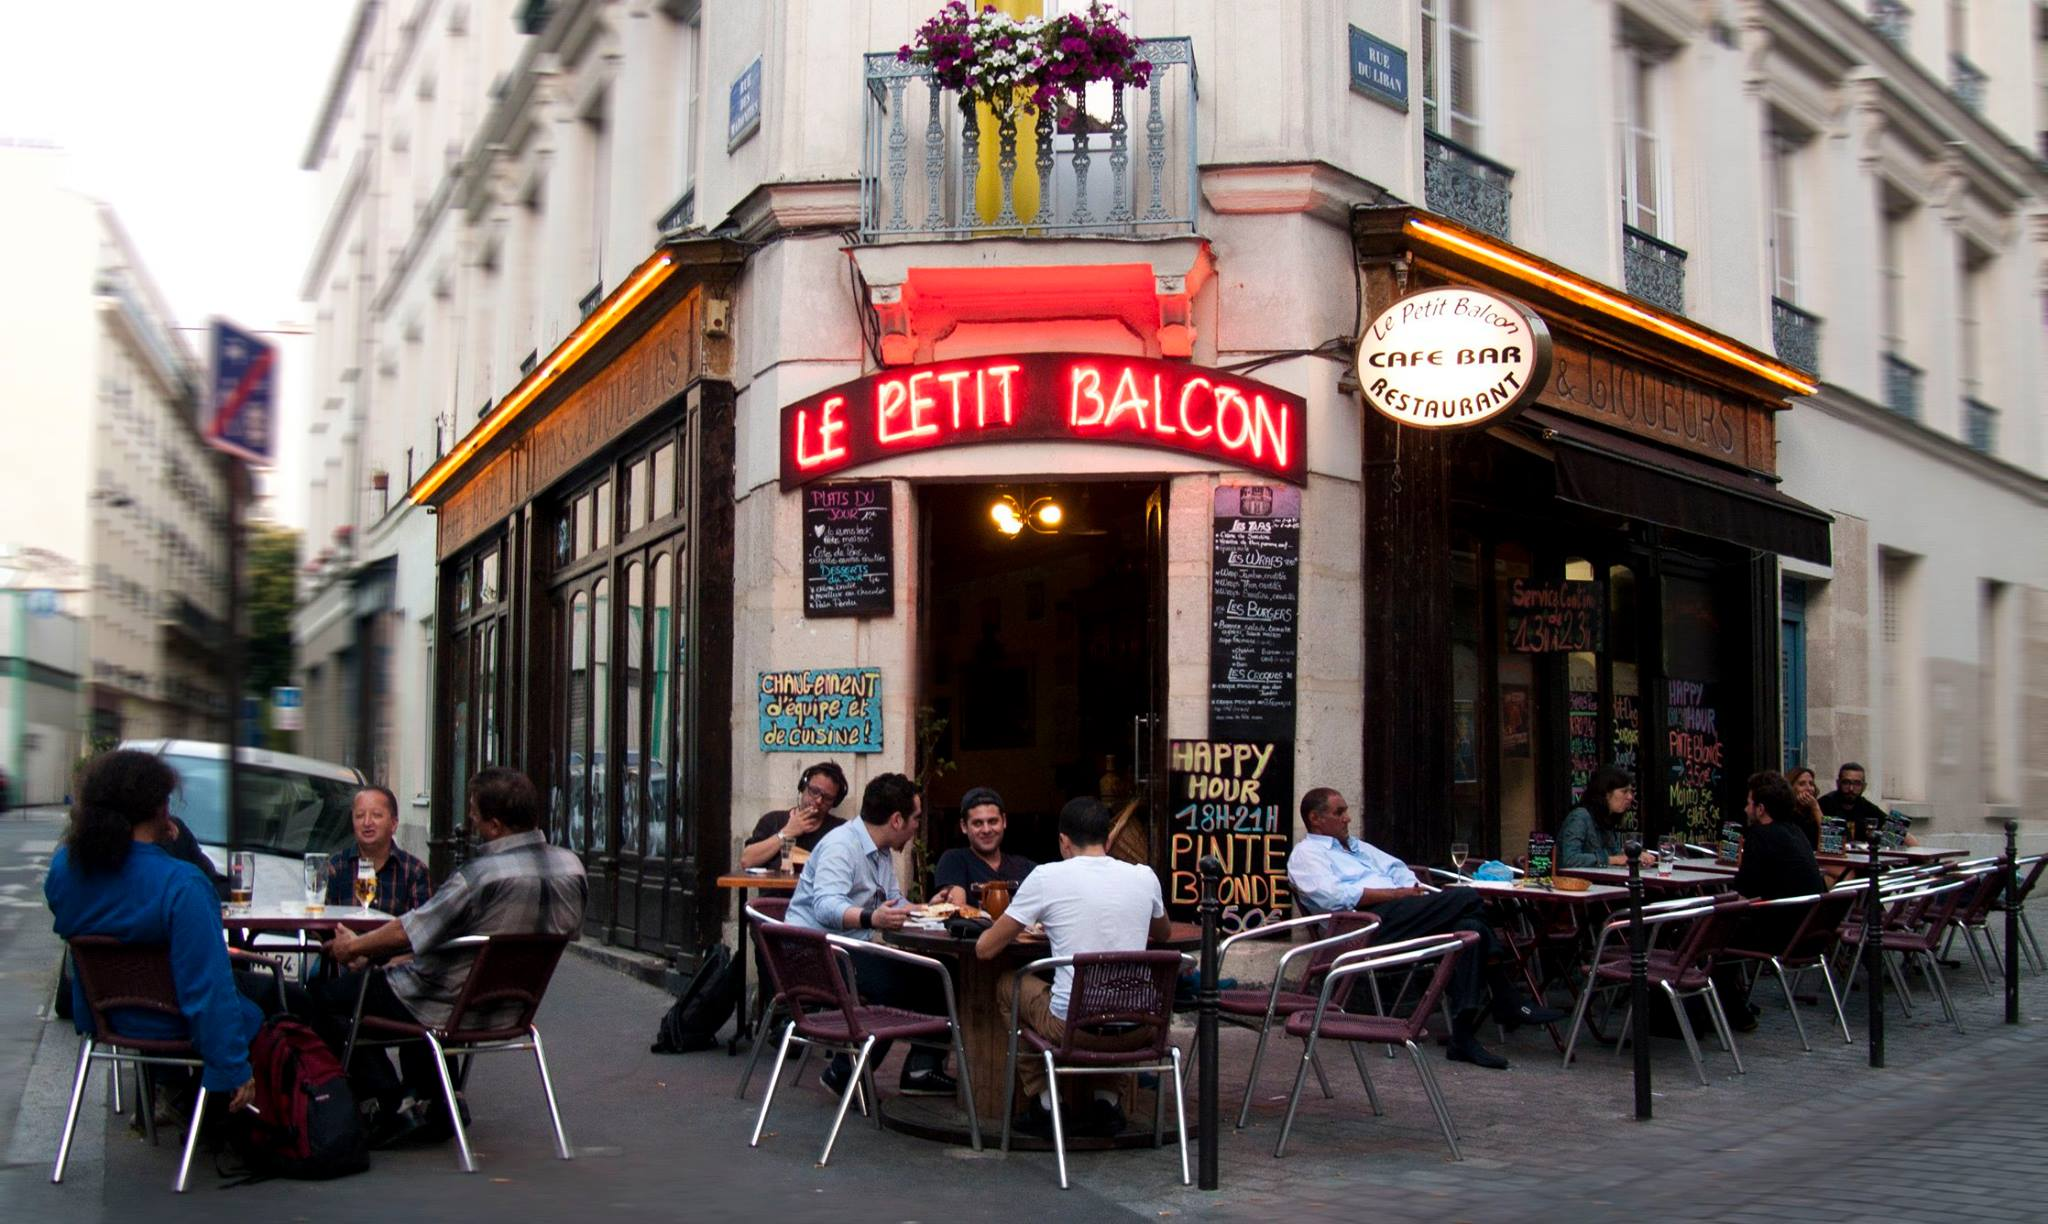 Le Petit Balcon le petit balcon (bar paris) | brad spurgeon's blog